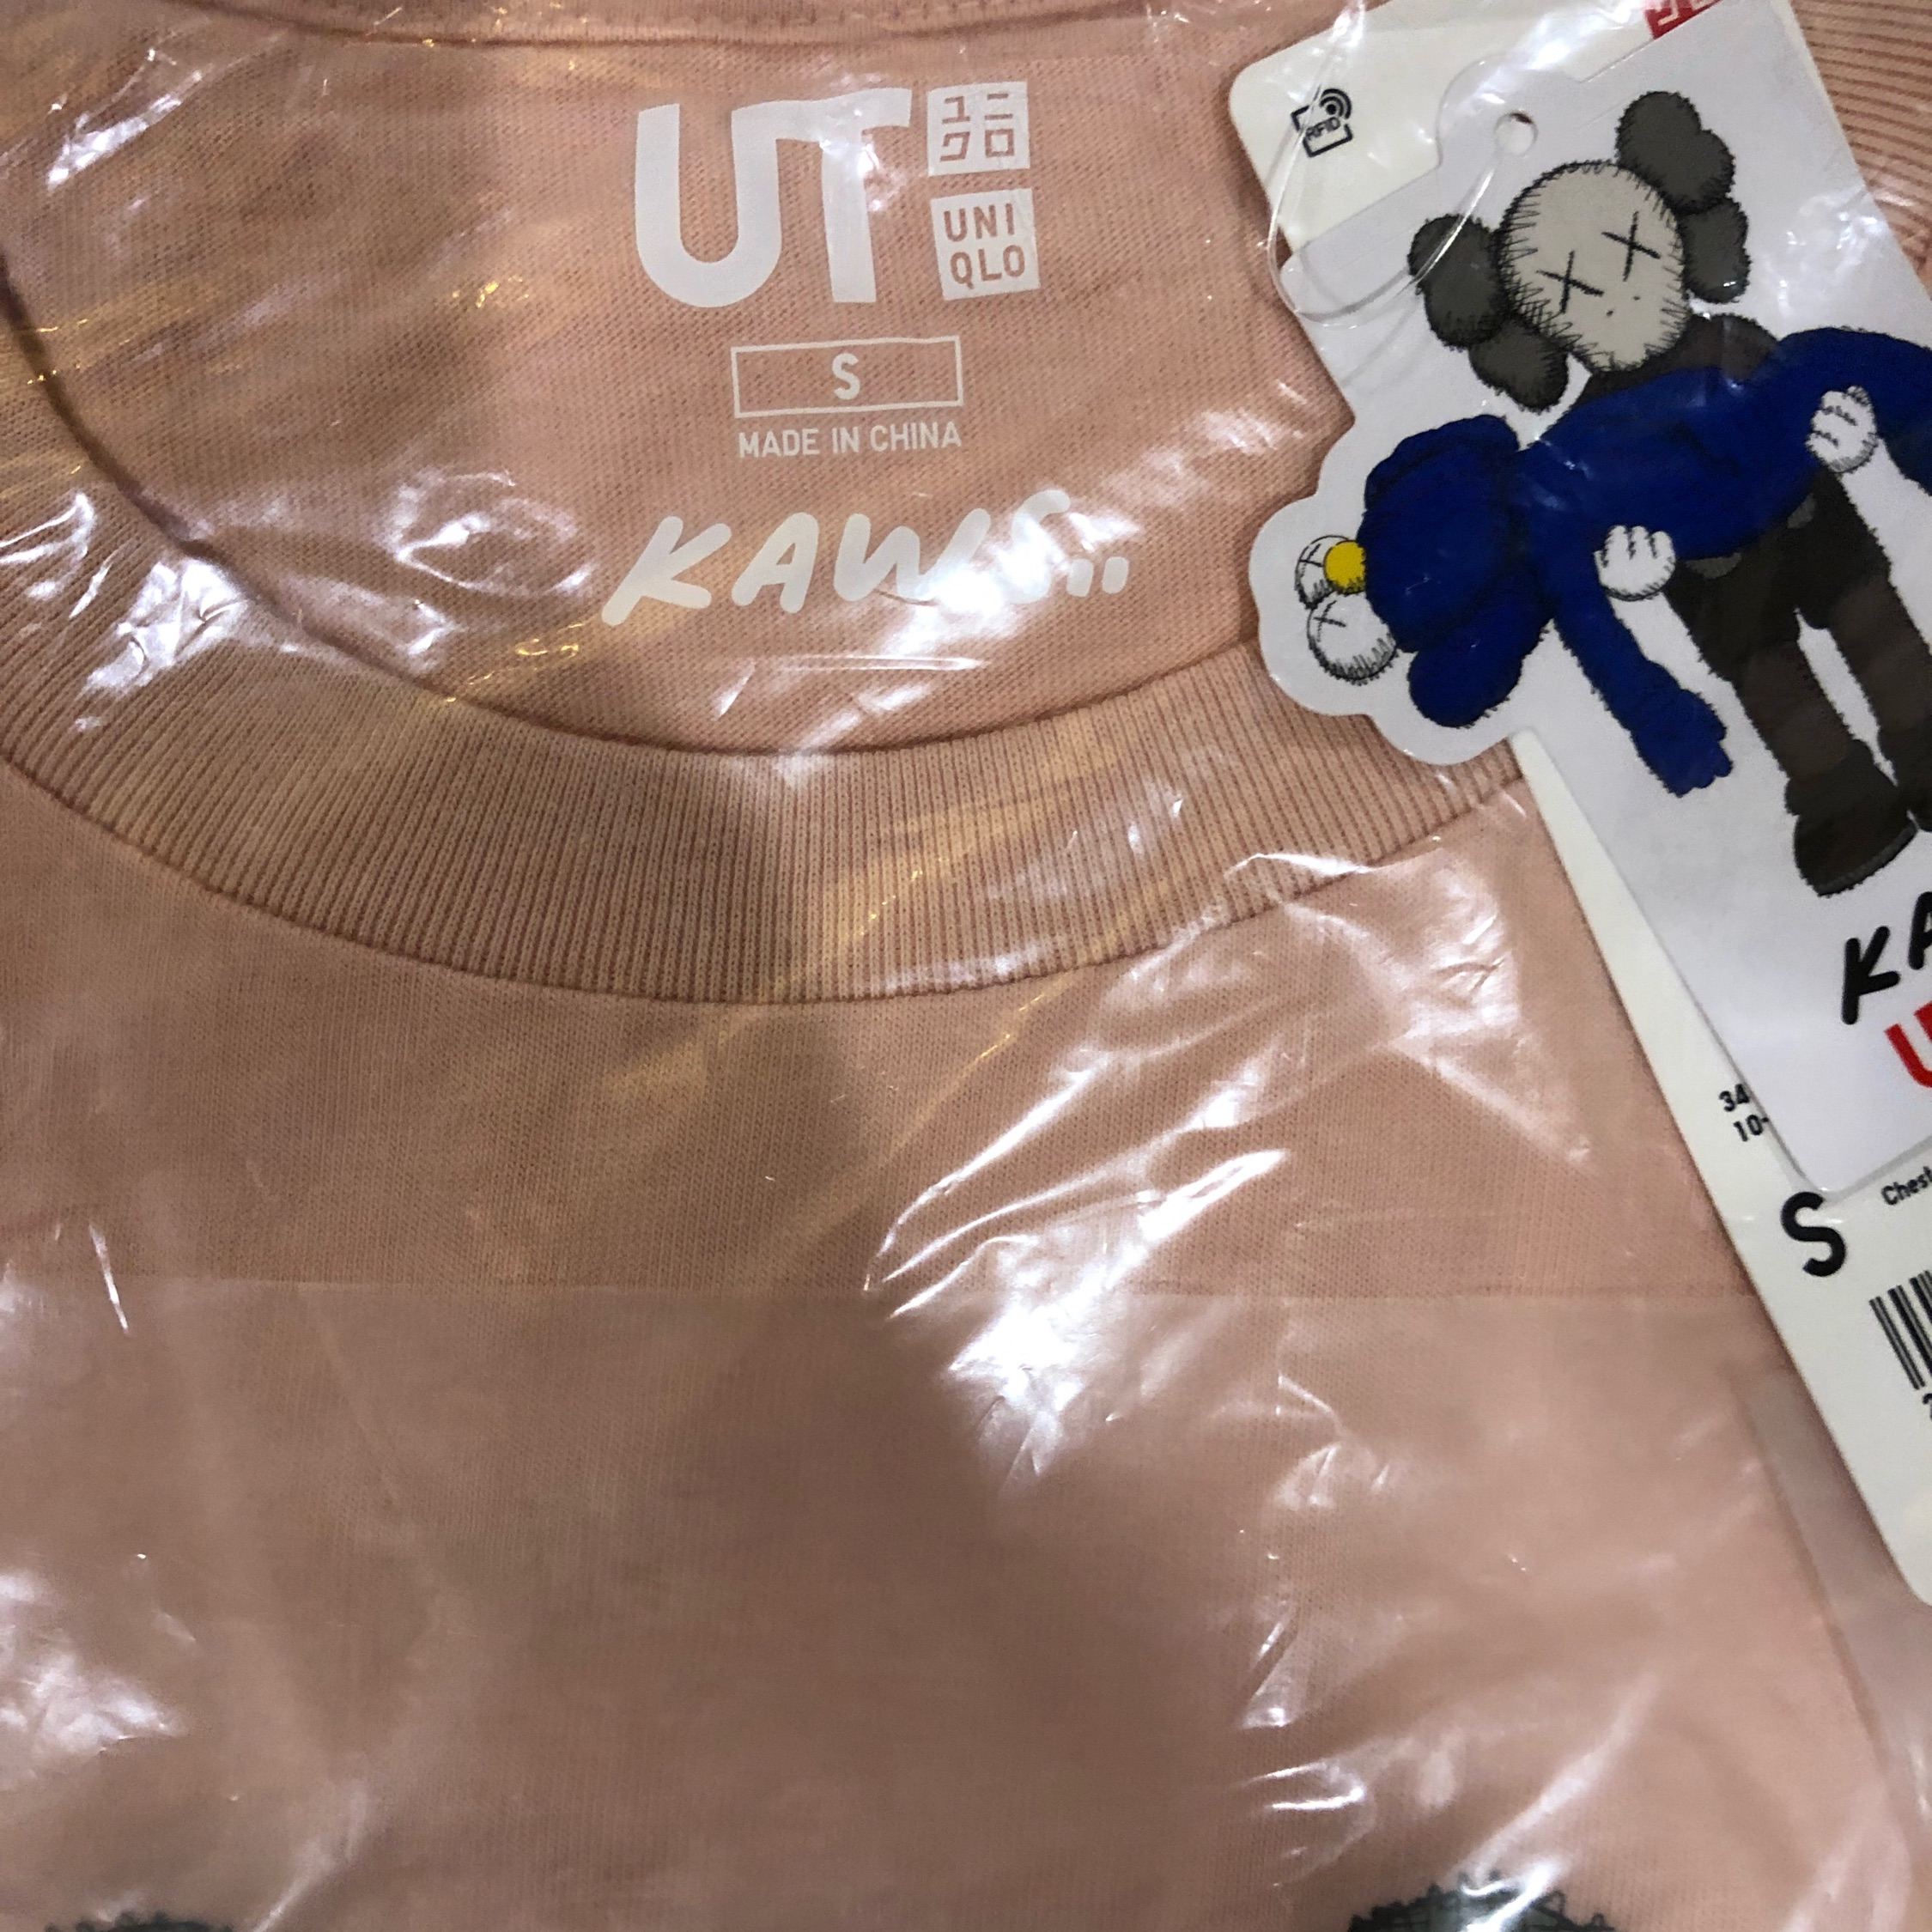 Last Kaws X Uniqlo Collaboration Pink Companion(S)